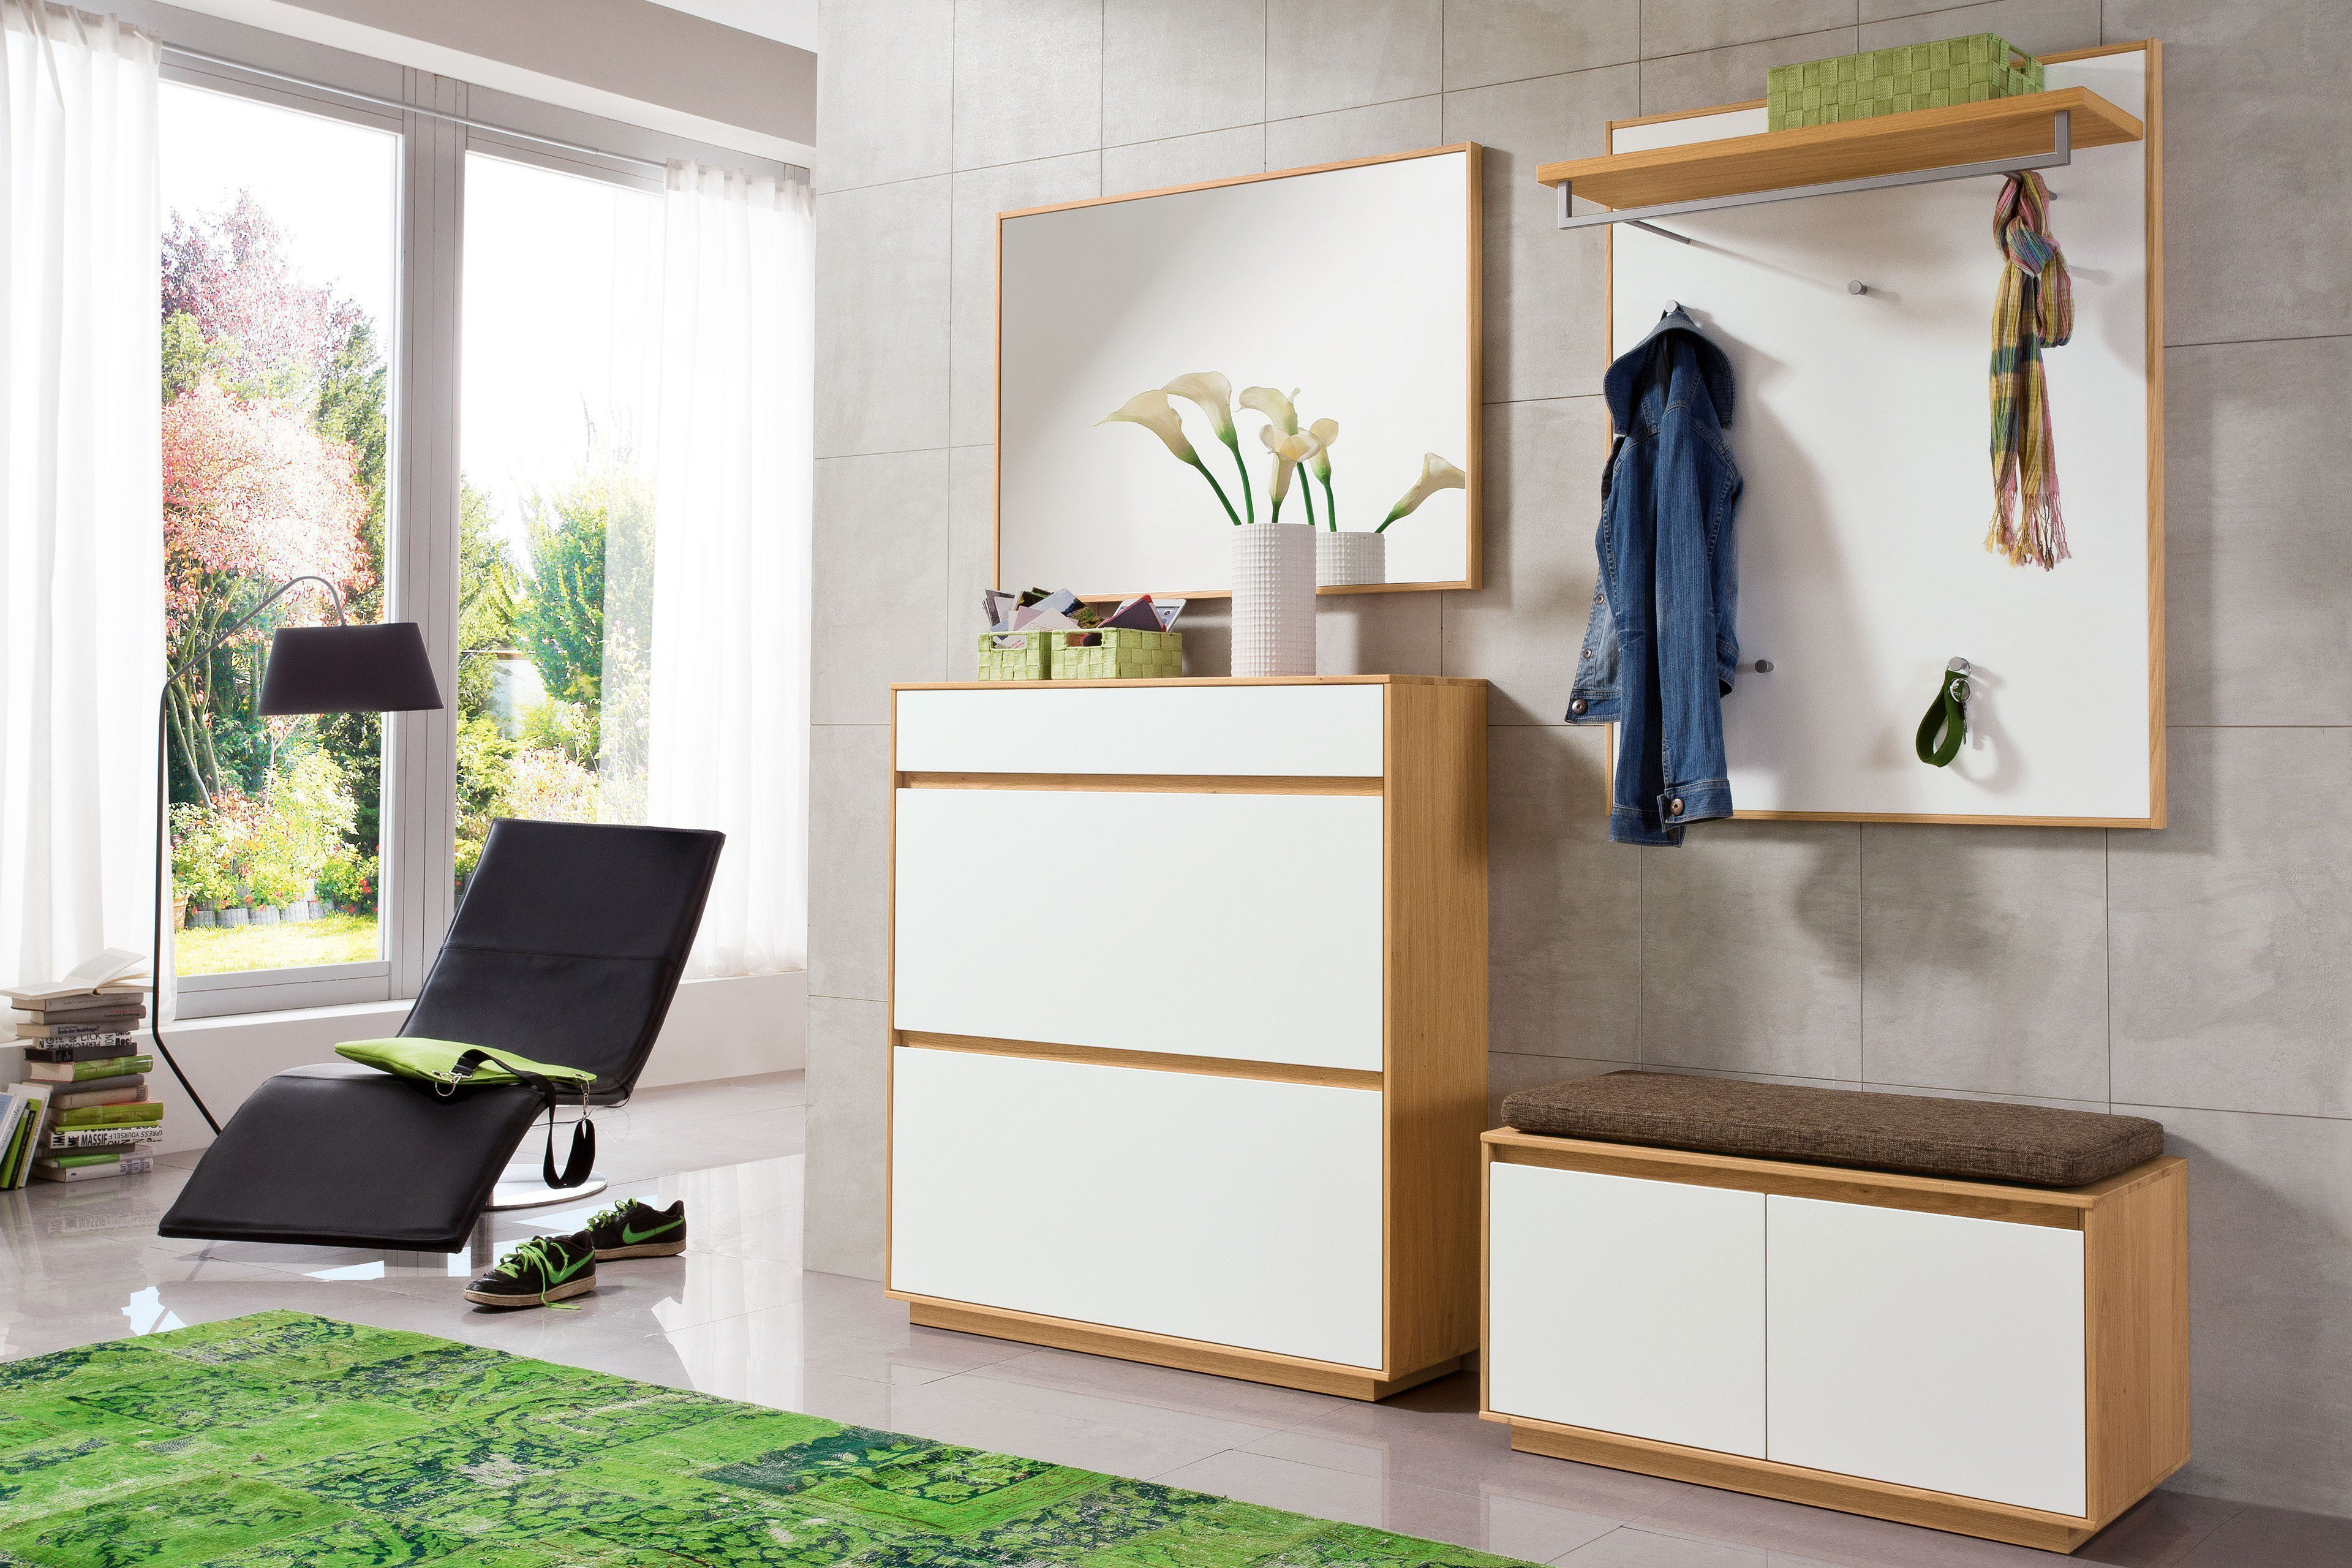 garderobe v100 eiche bianco mit wei m lack von voss m bel. Black Bedroom Furniture Sets. Home Design Ideas